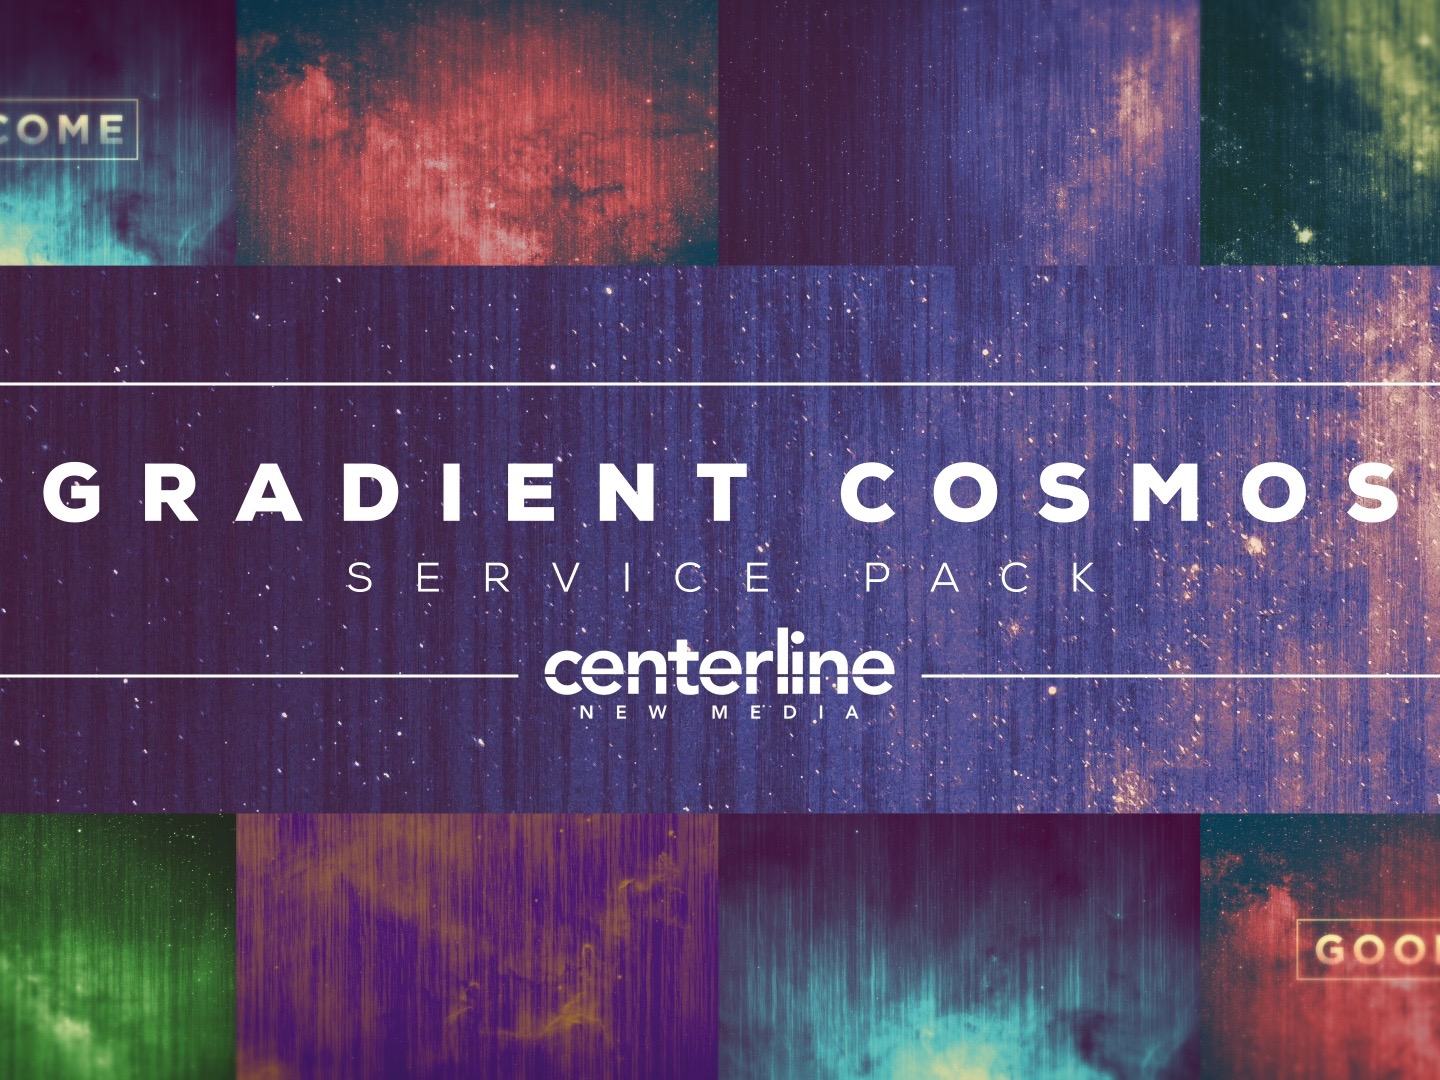 GRADIENT COSMOS SERVICE PACK